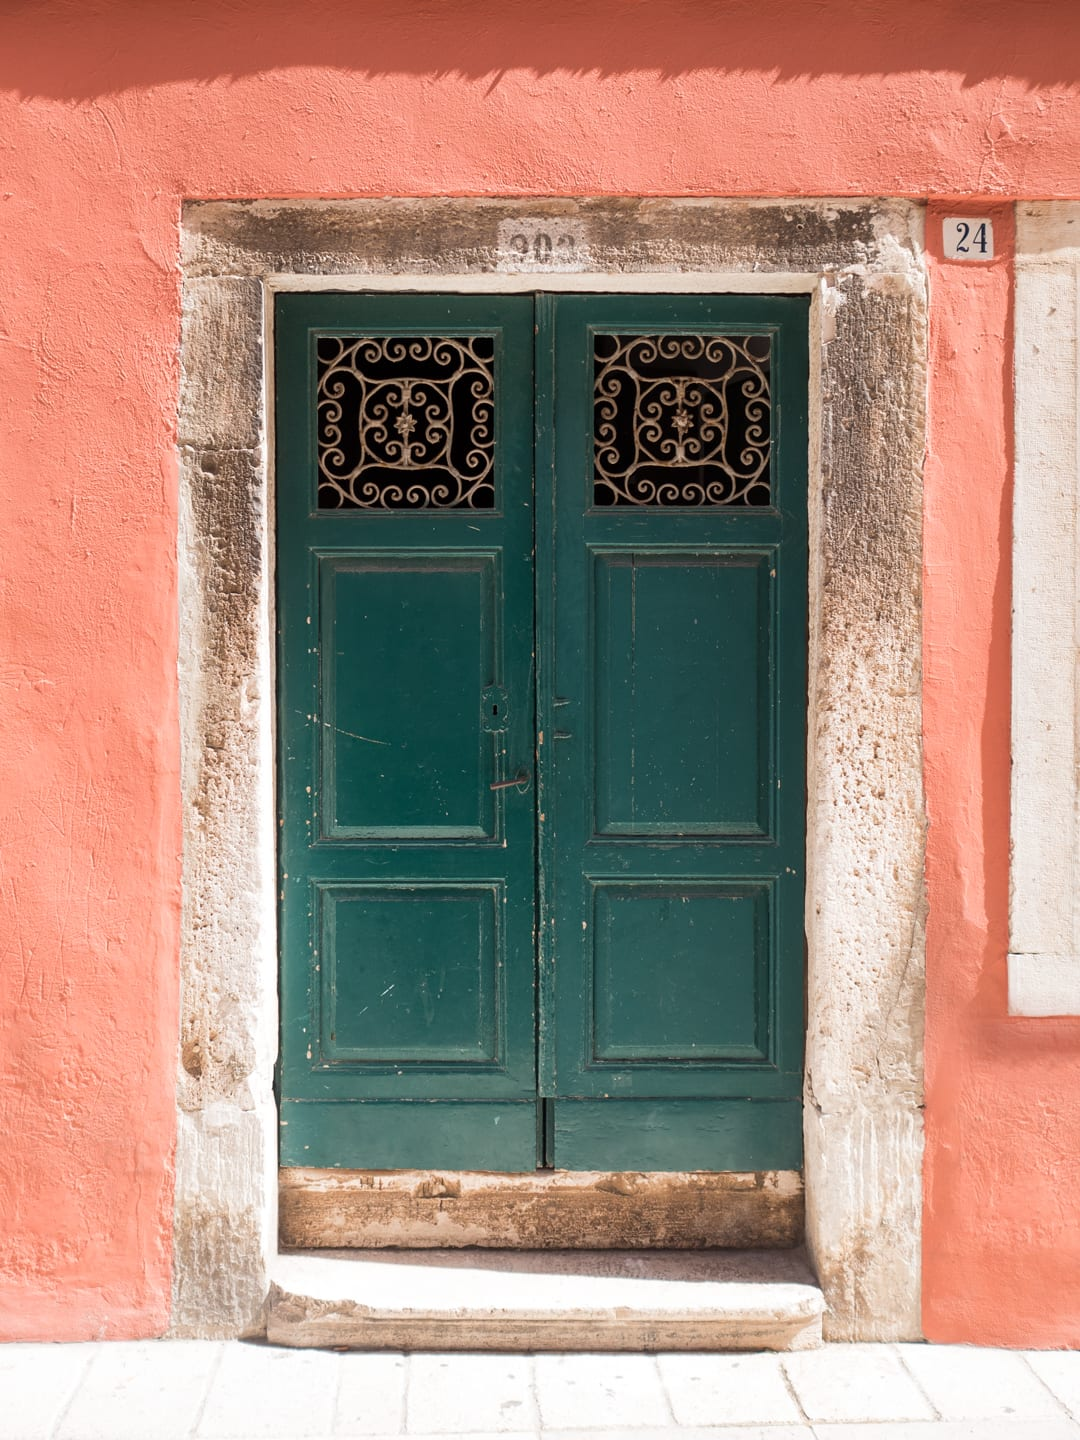 Green doorway & peach wall - Rovinj, Croatia